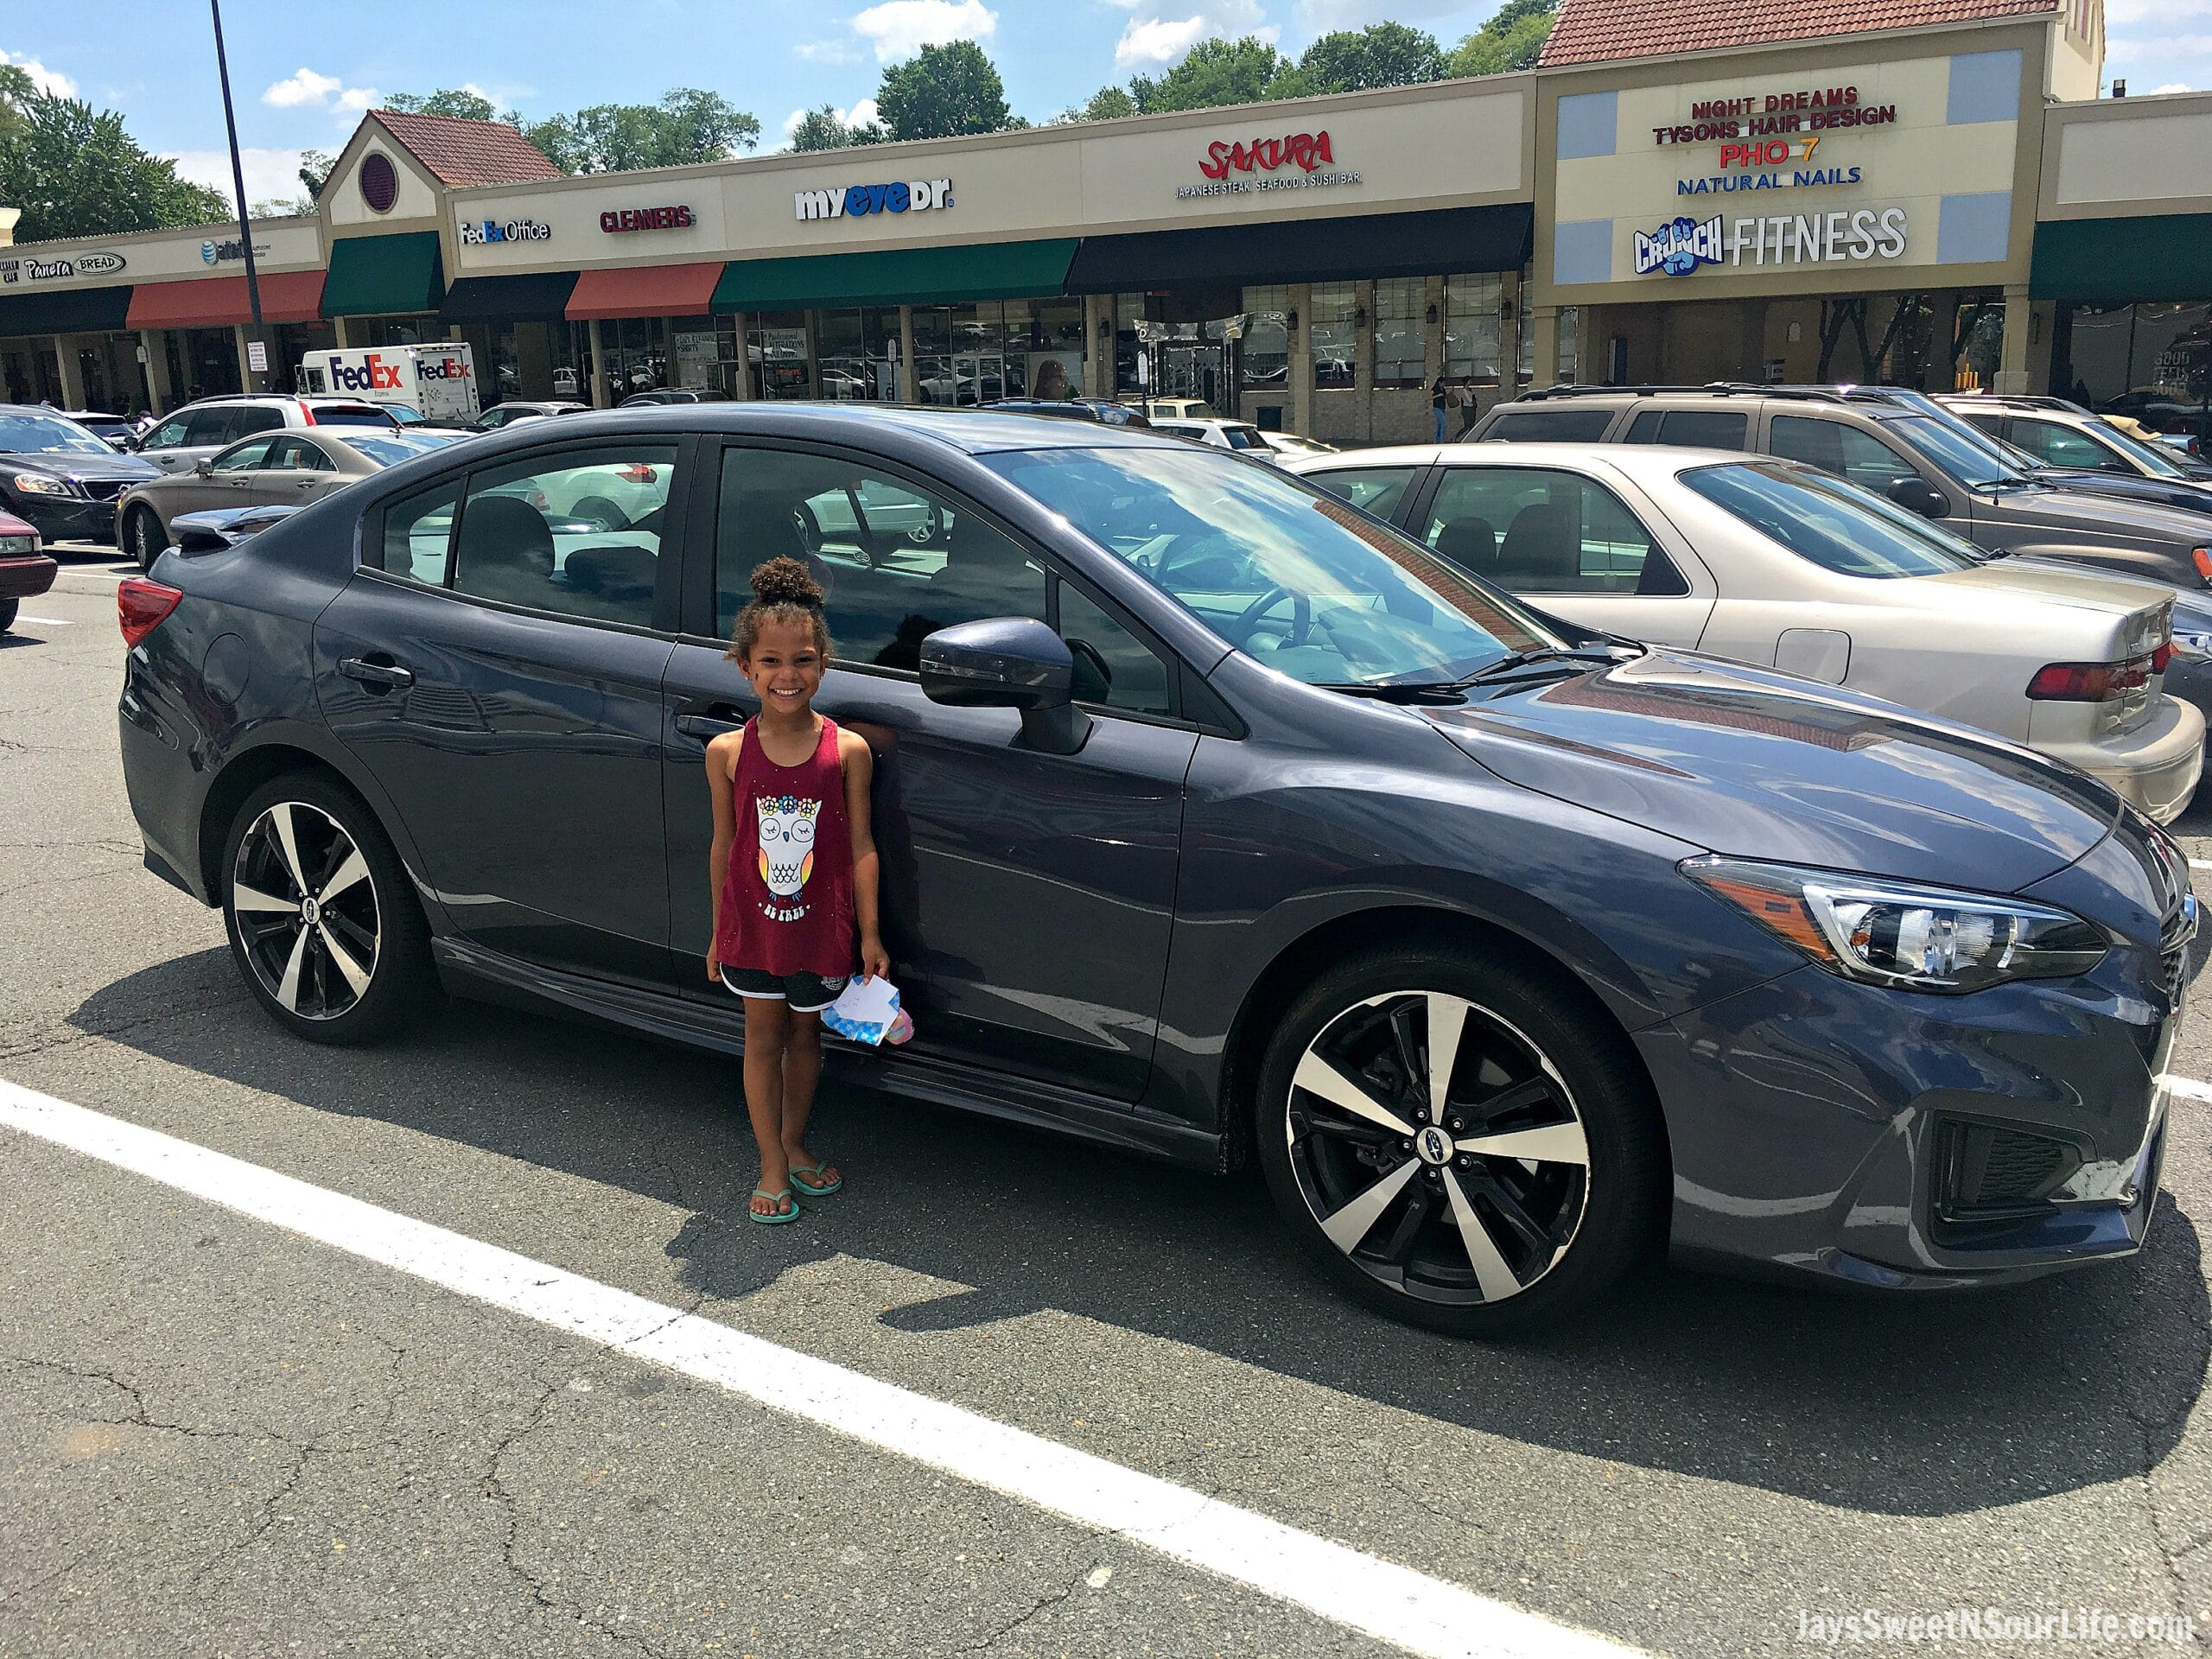 Cruising around Washington D.C. in the 2017 Subaru Impreza iSport Sedan